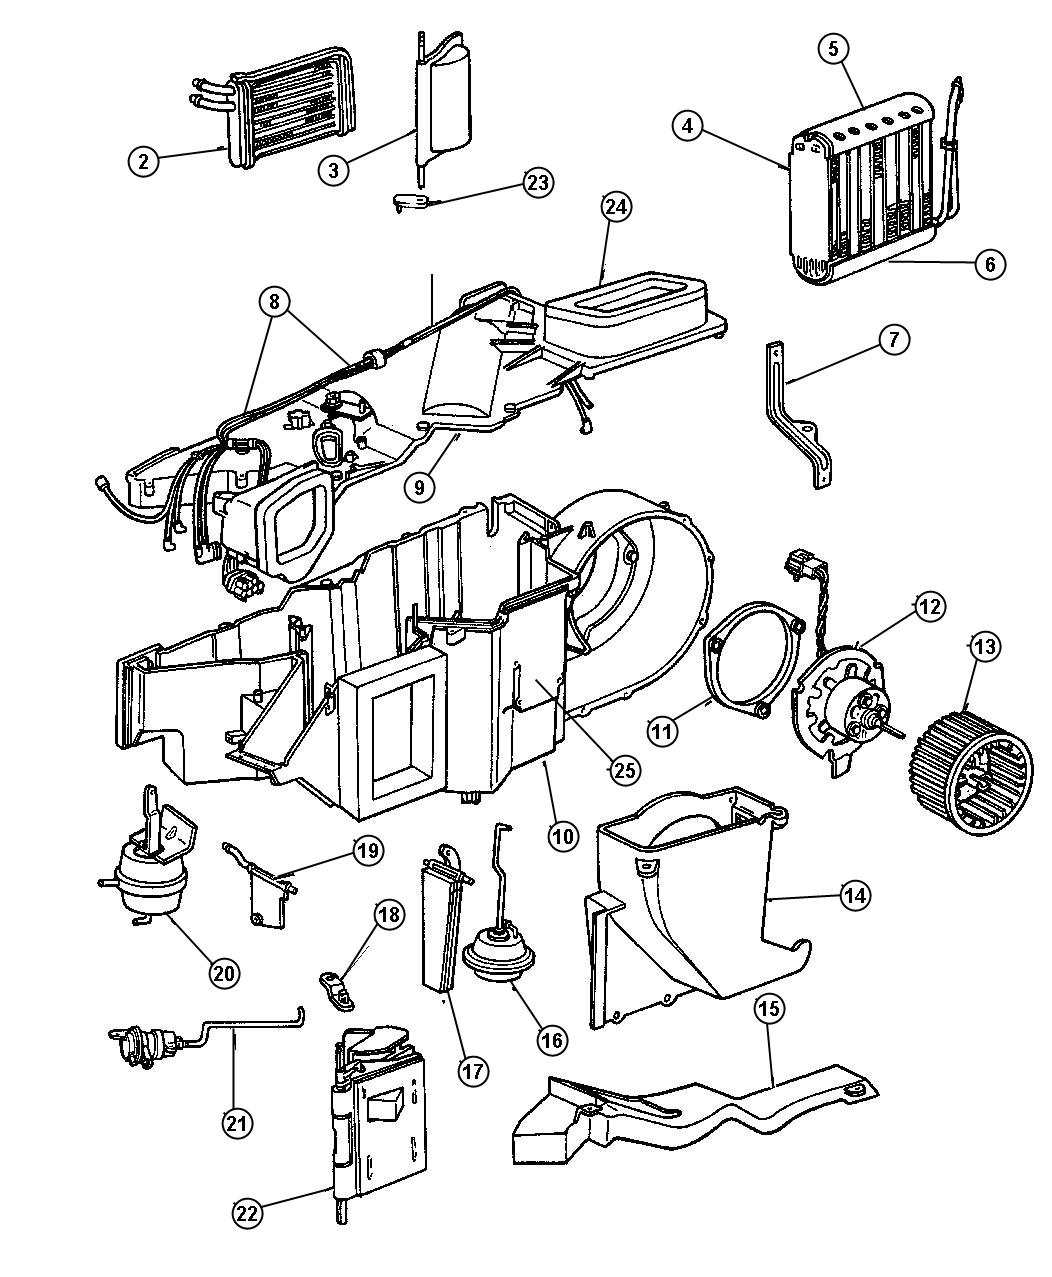 1999 Dodge Caravan Timing Diagram Content Resource Of Wiring 2007 Heater Core Plymouth Voyager Diagrams Grand Parts 2003